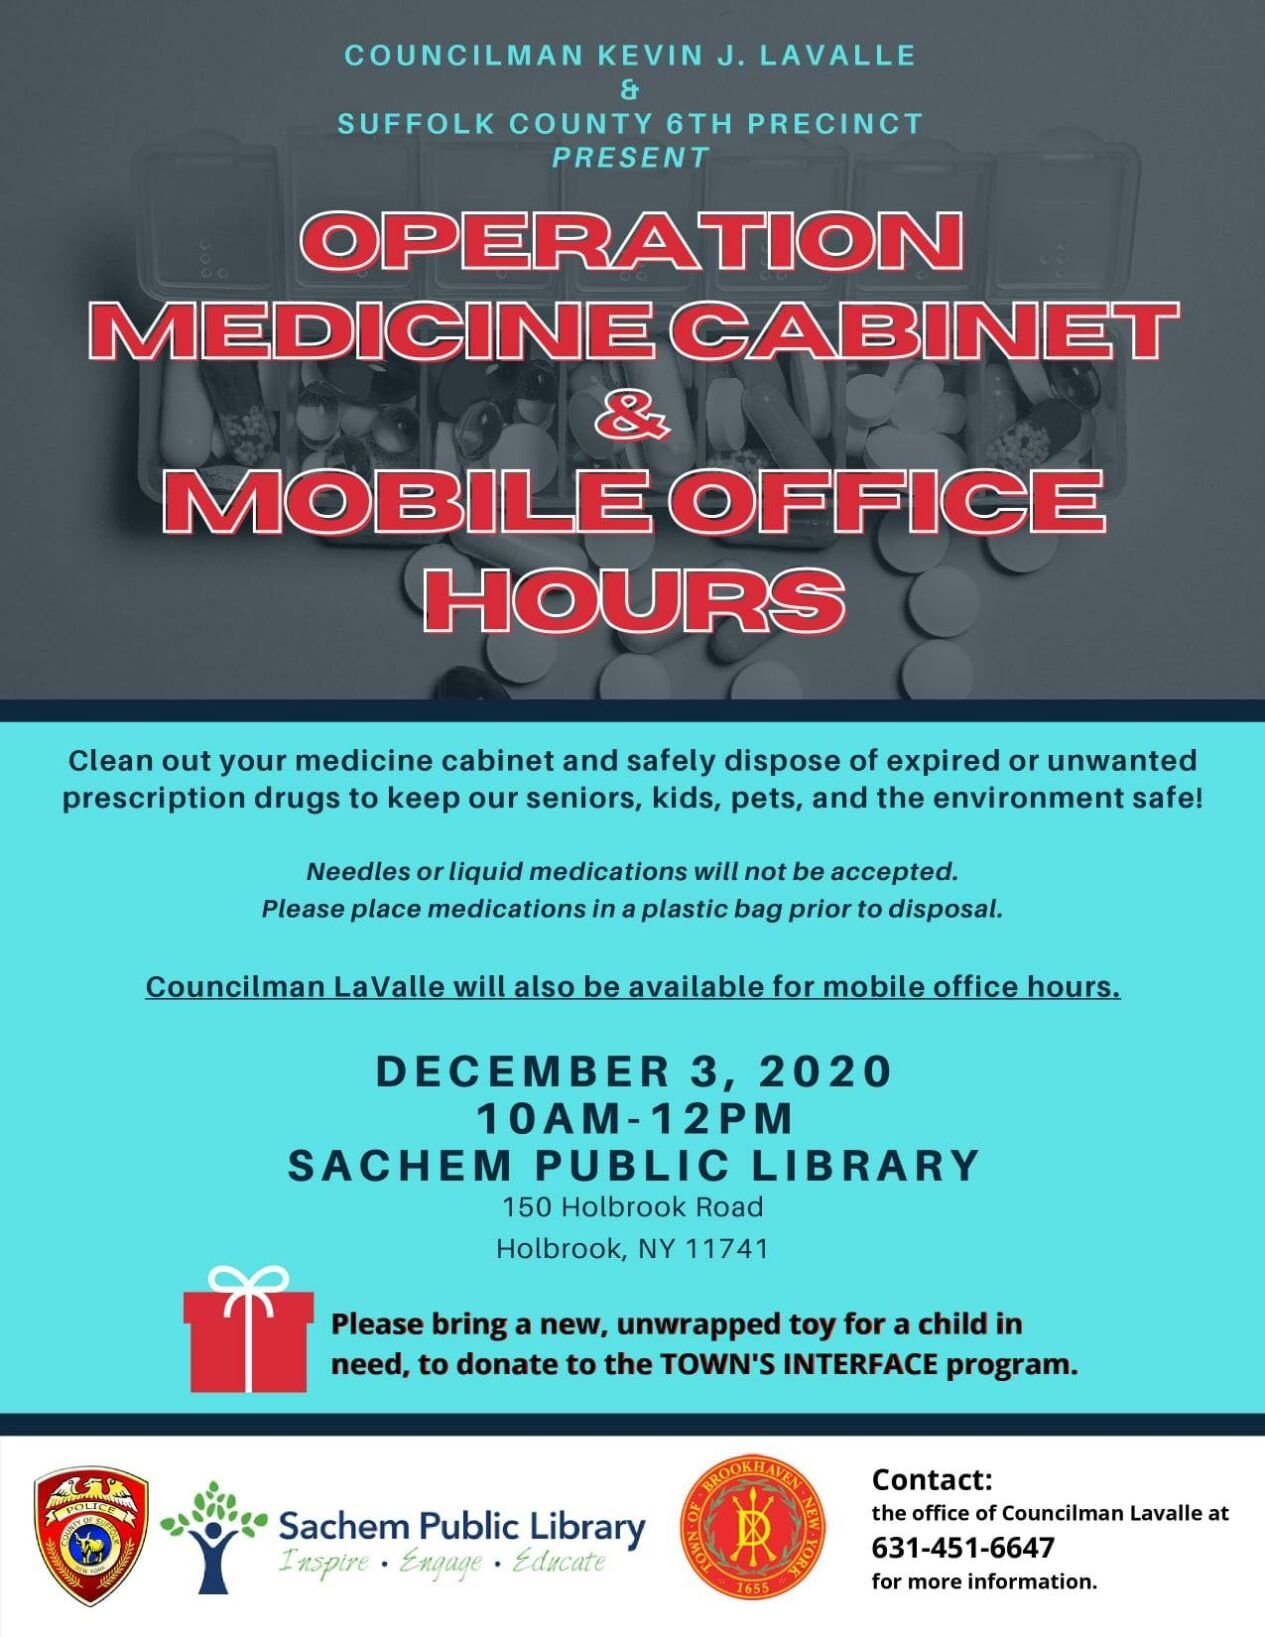 Operation Medicine Cabinet & Mobile Office Hours at the Sachem Public Library